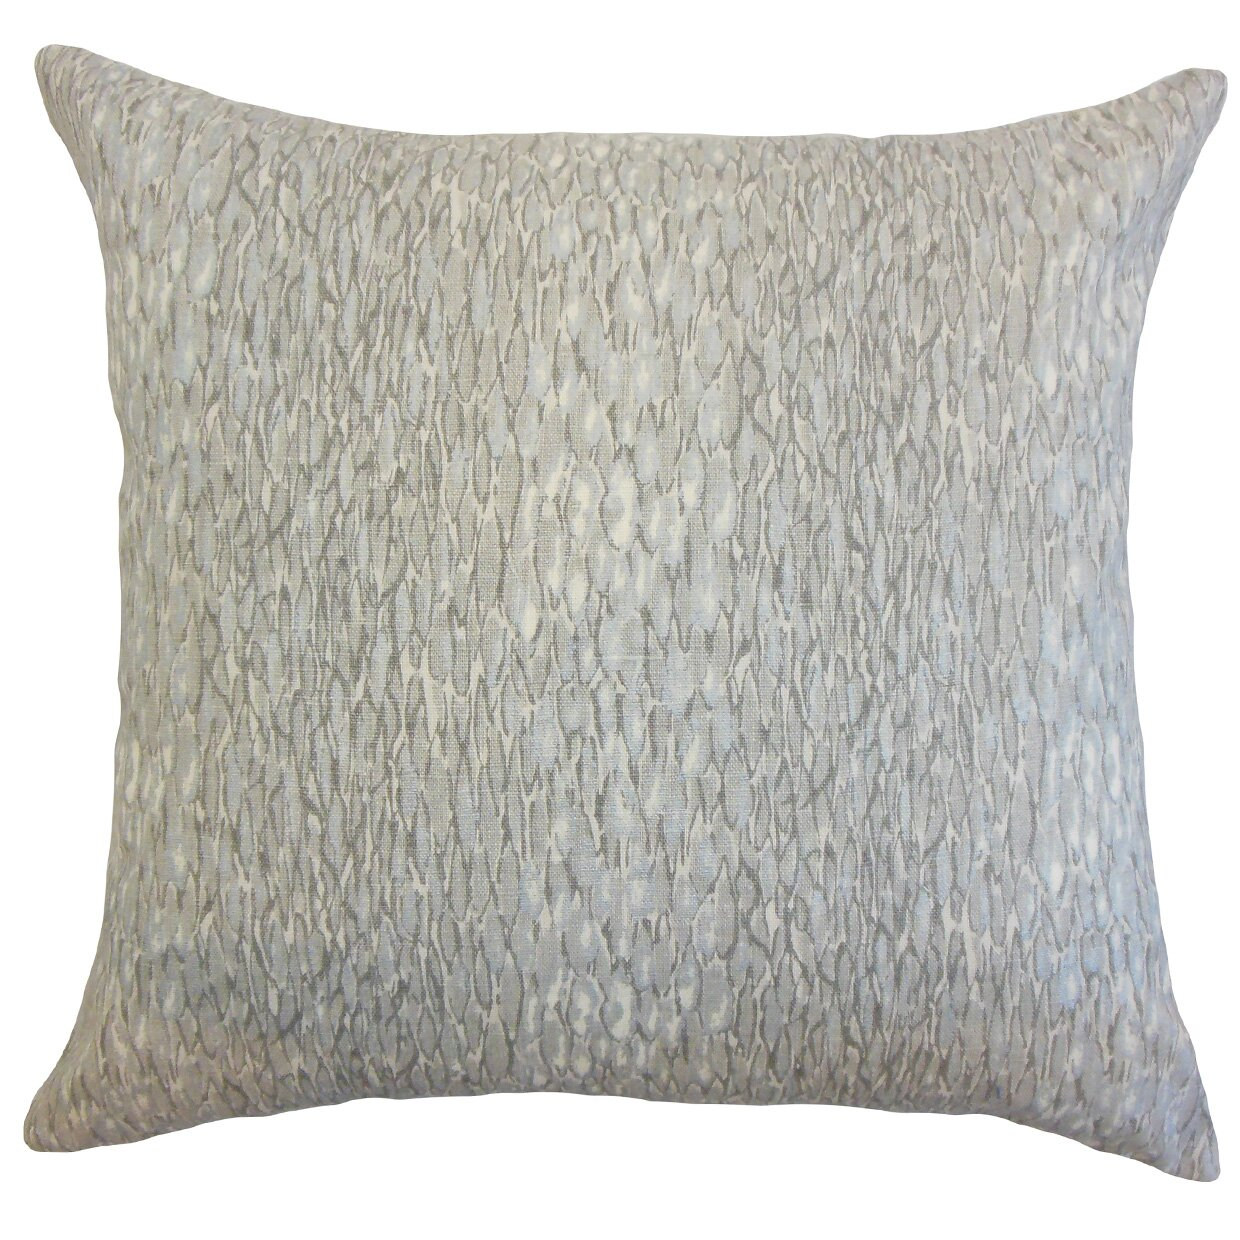 Decorative Pillows Linen : The Pillow Collection Galen Linen Throw Pillow & Reviews Wayfair